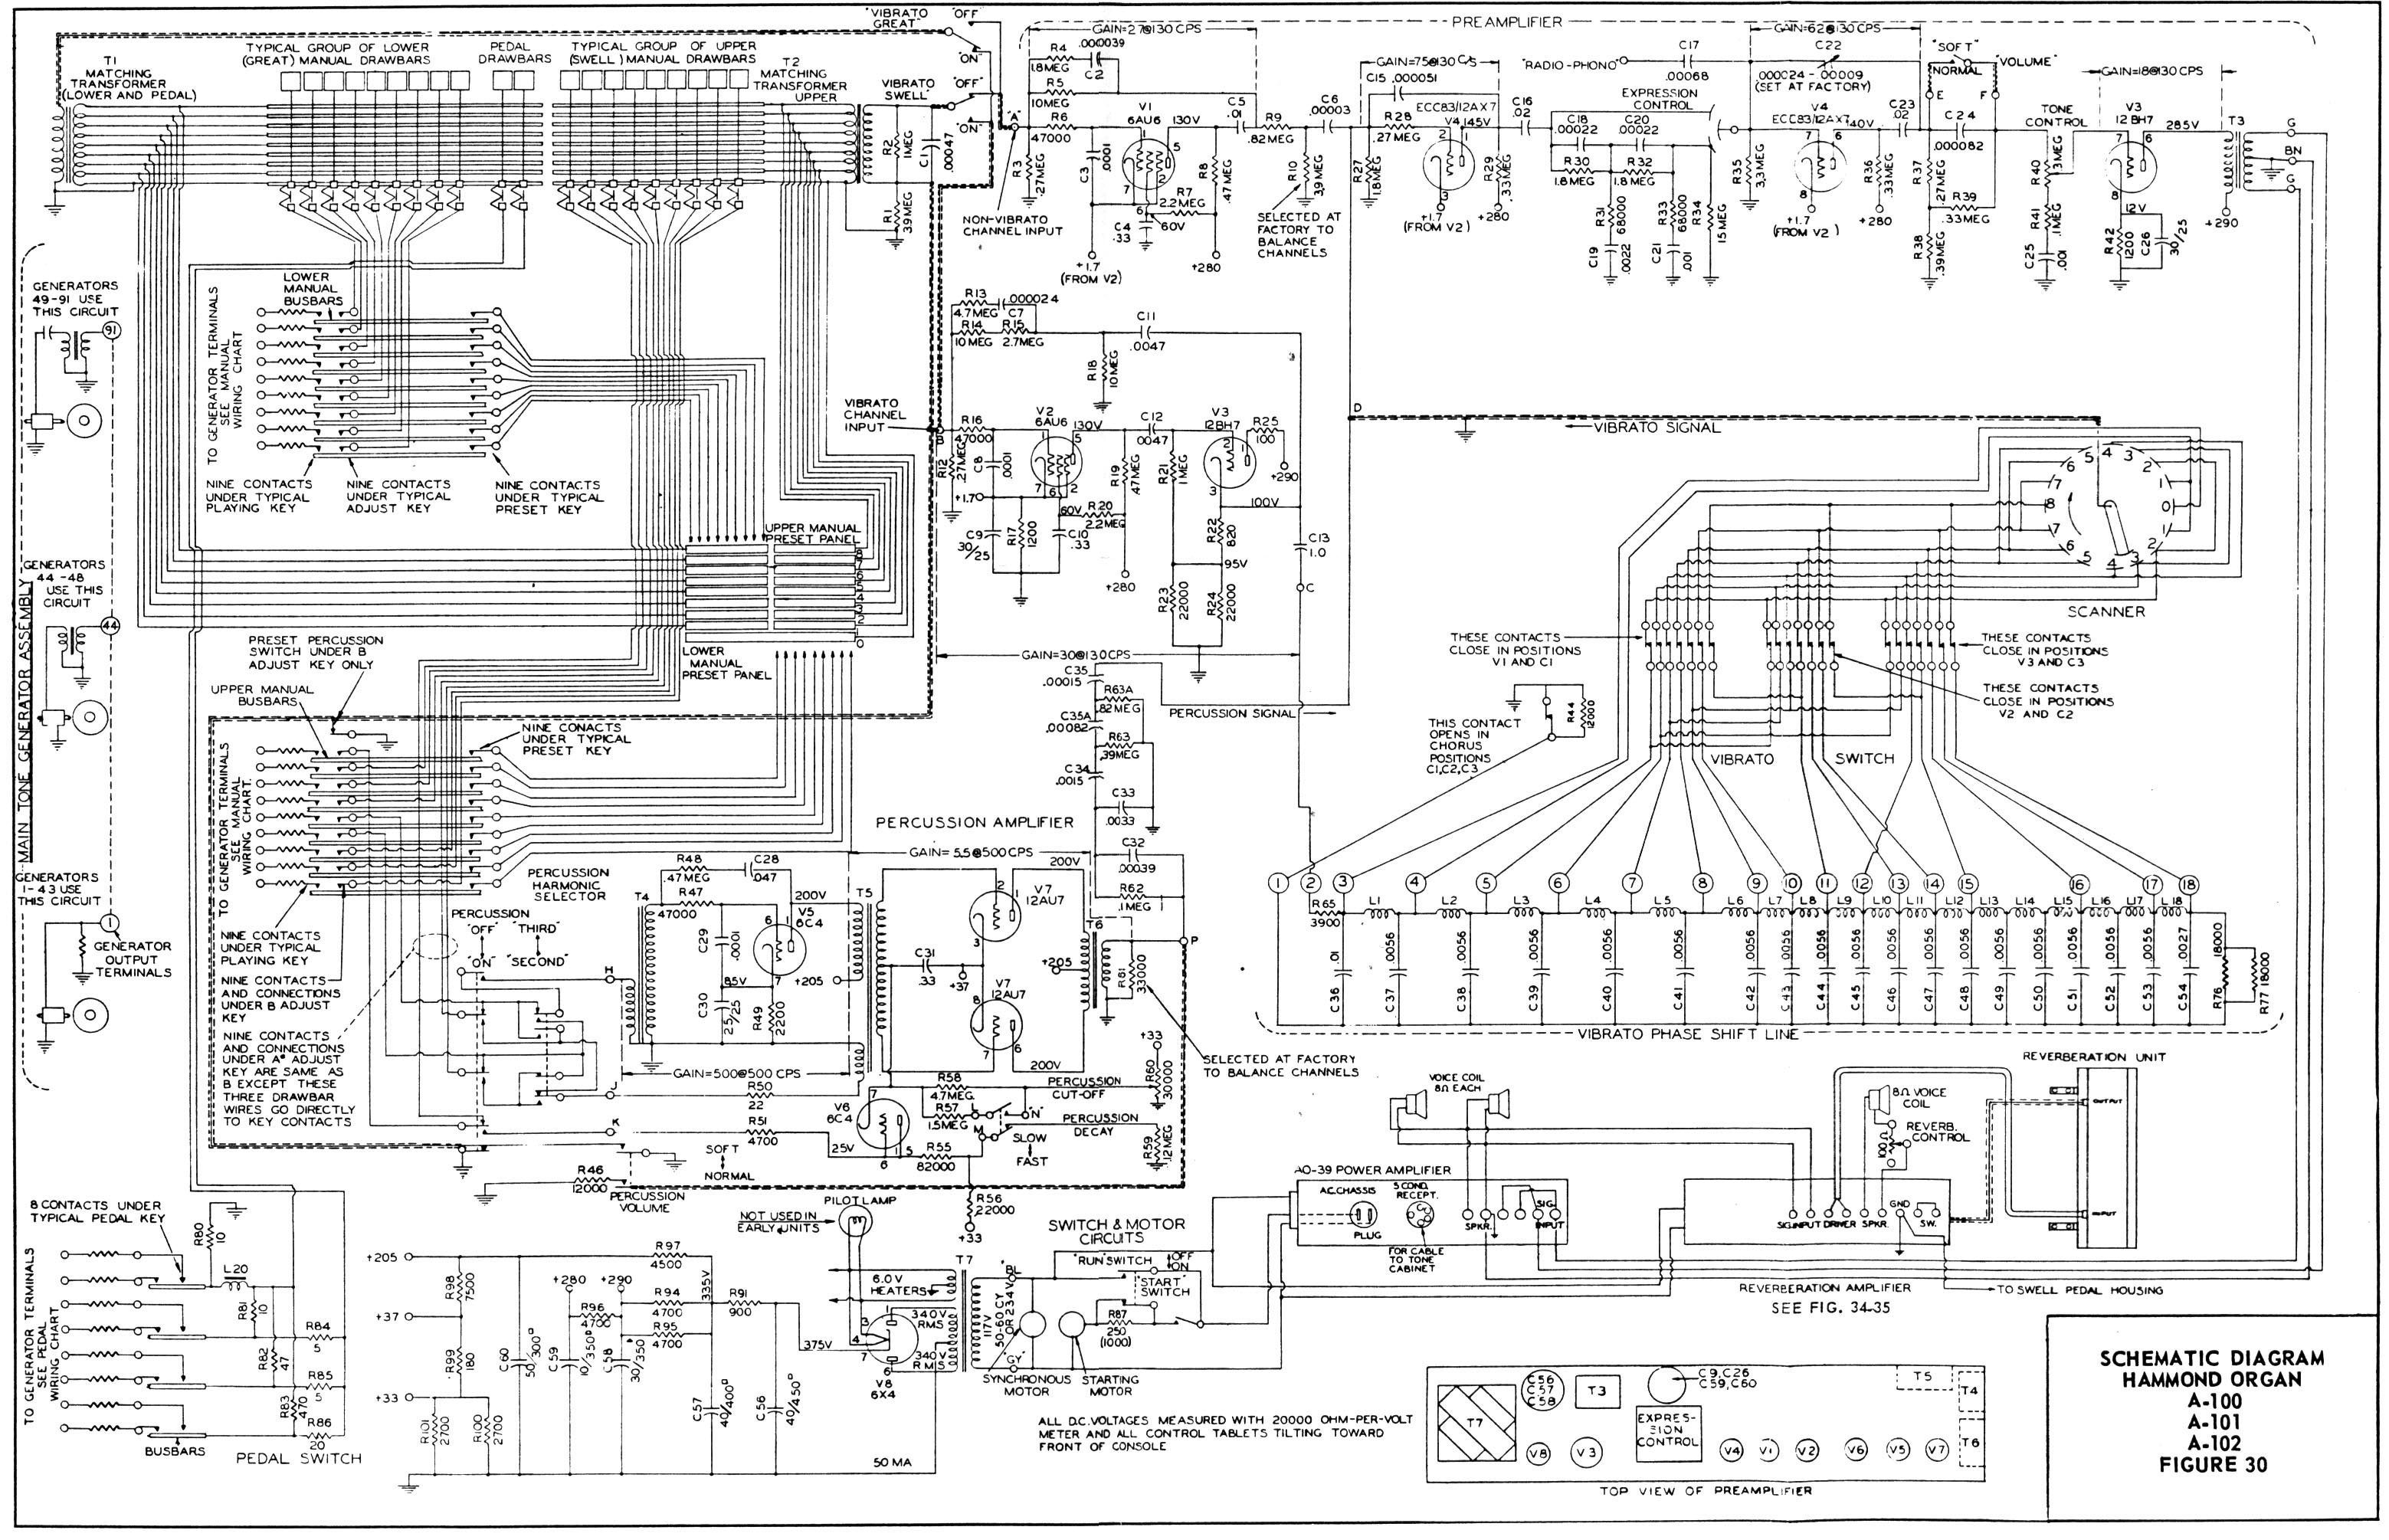 166895362 Audio Innovations 300 Mk2 Power  lifier Schematic moreover Hammond together with Toyota Corolla Alternator Wiring Diagram together with Bose Car Stereo Wiring Diagram furthermore Wiring Diagram For Sg Guitar. on pioneer amplifier